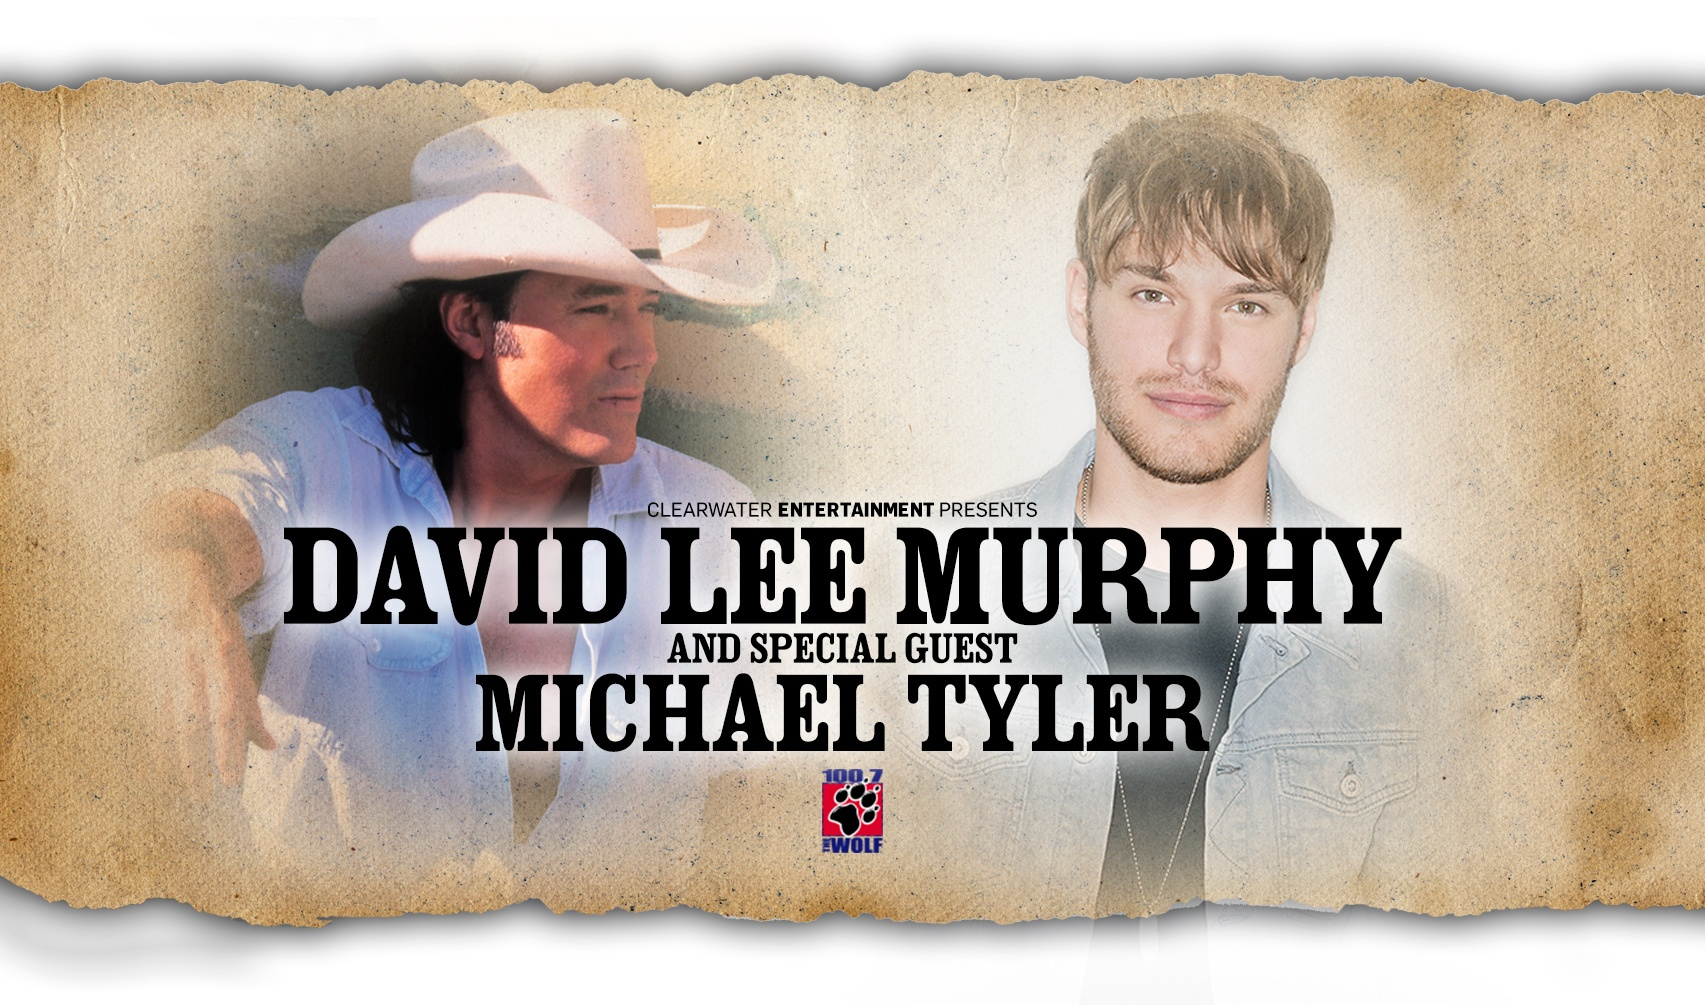 David Lee Murphy & Michael Tyler